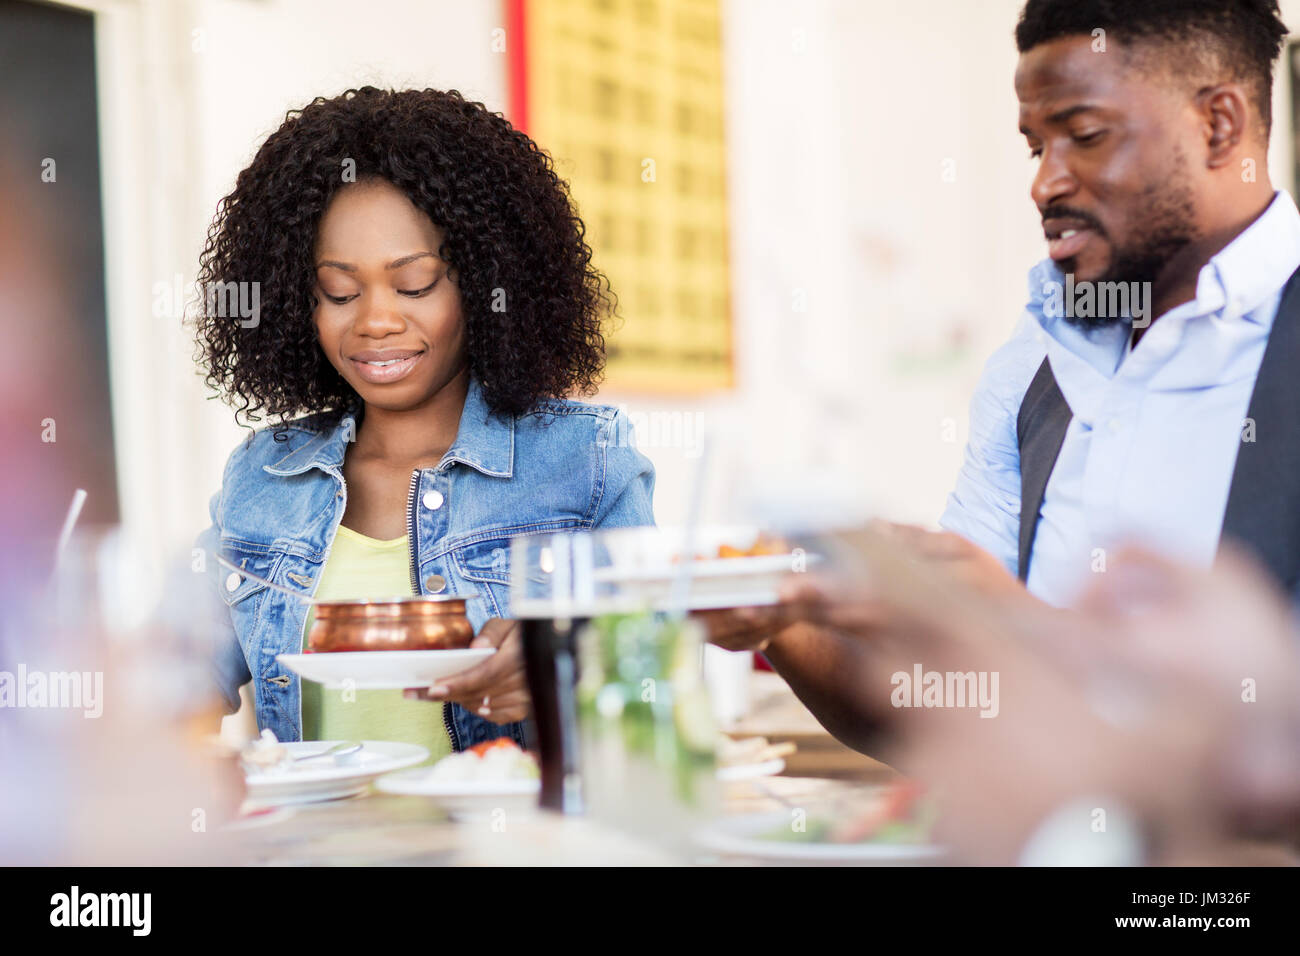 Happy Man And Woman Eating At Restaurant